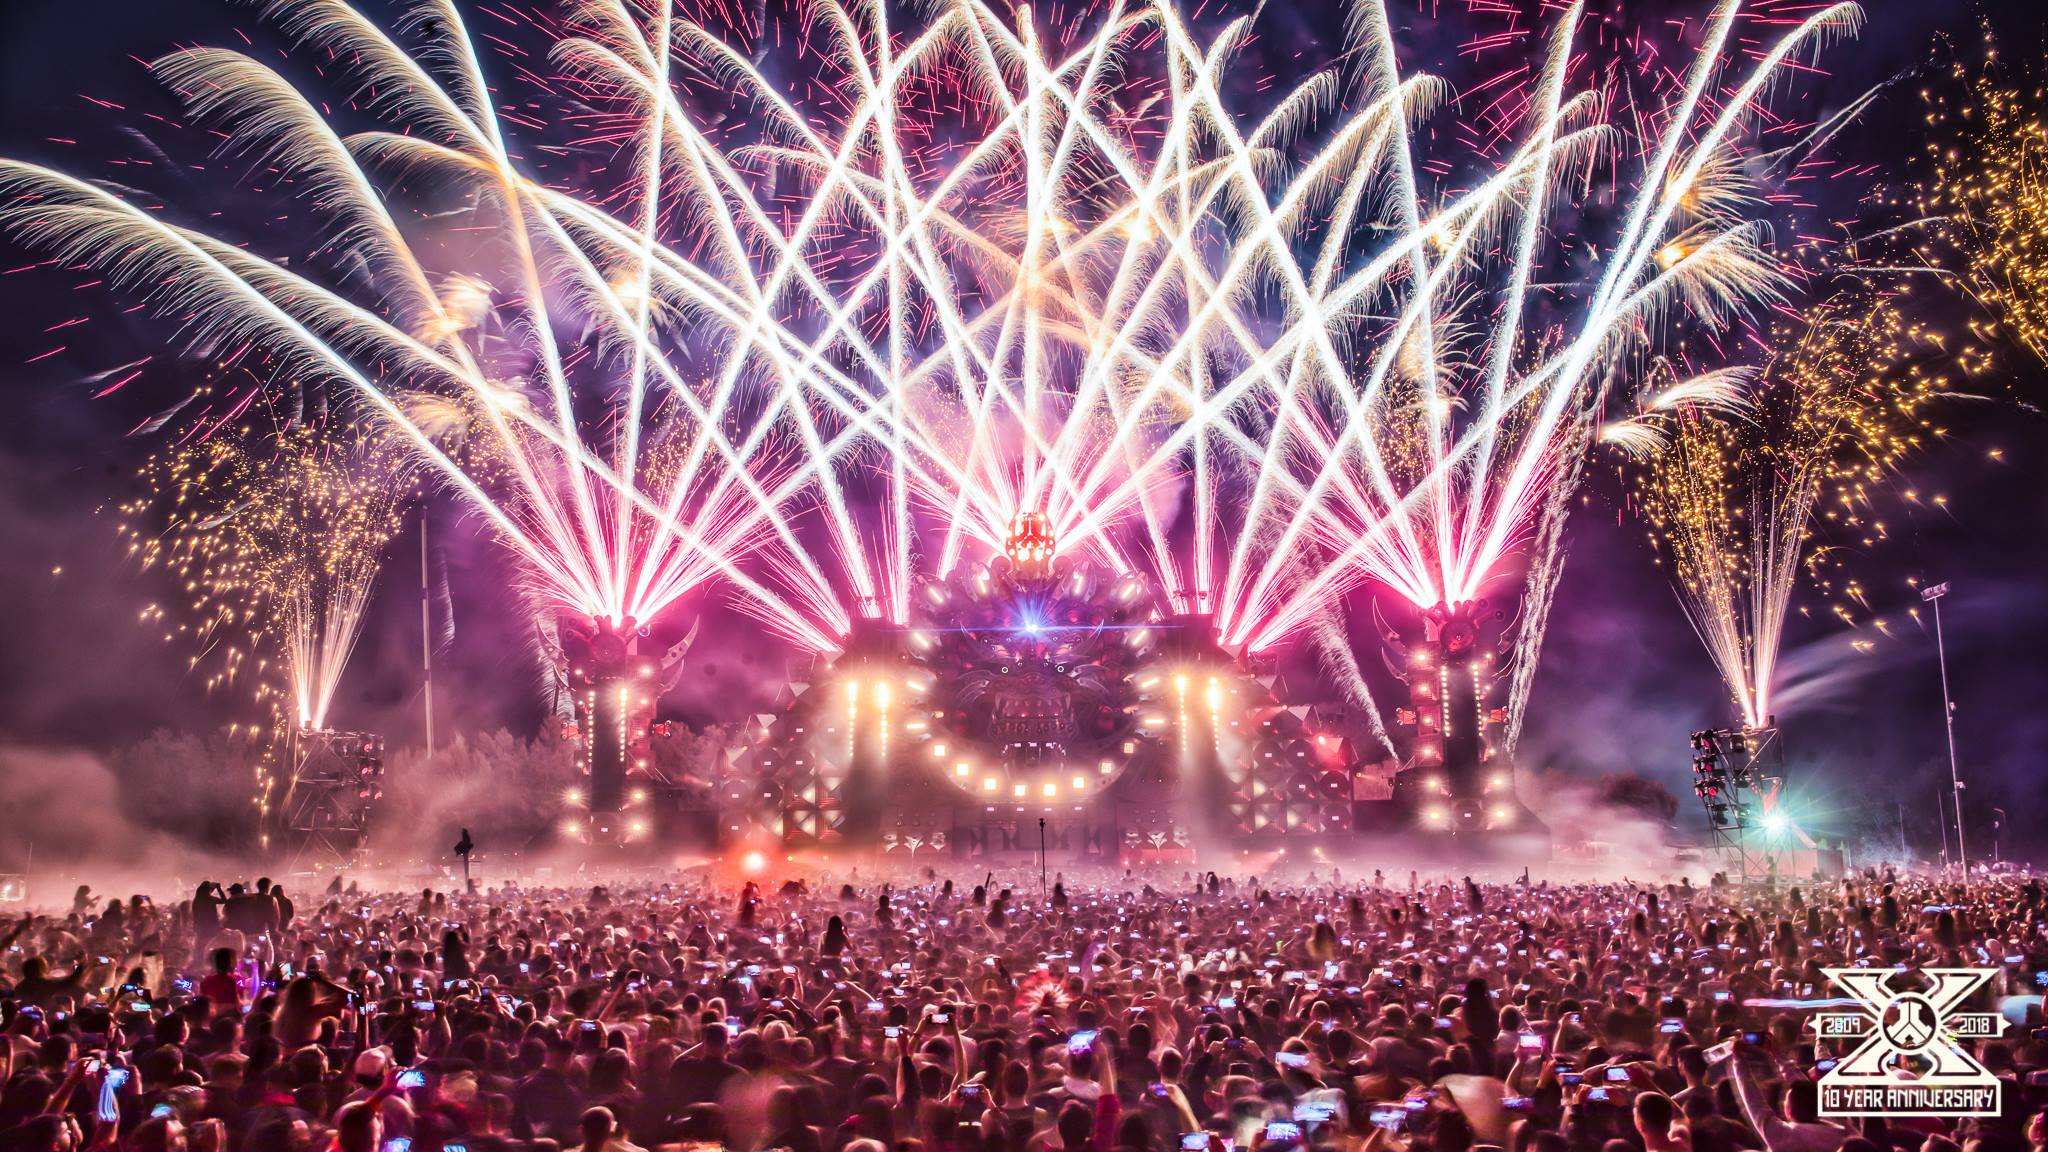 The Defqon. 1 event in Sydney. Image: Defqon. 1 via Facebook.